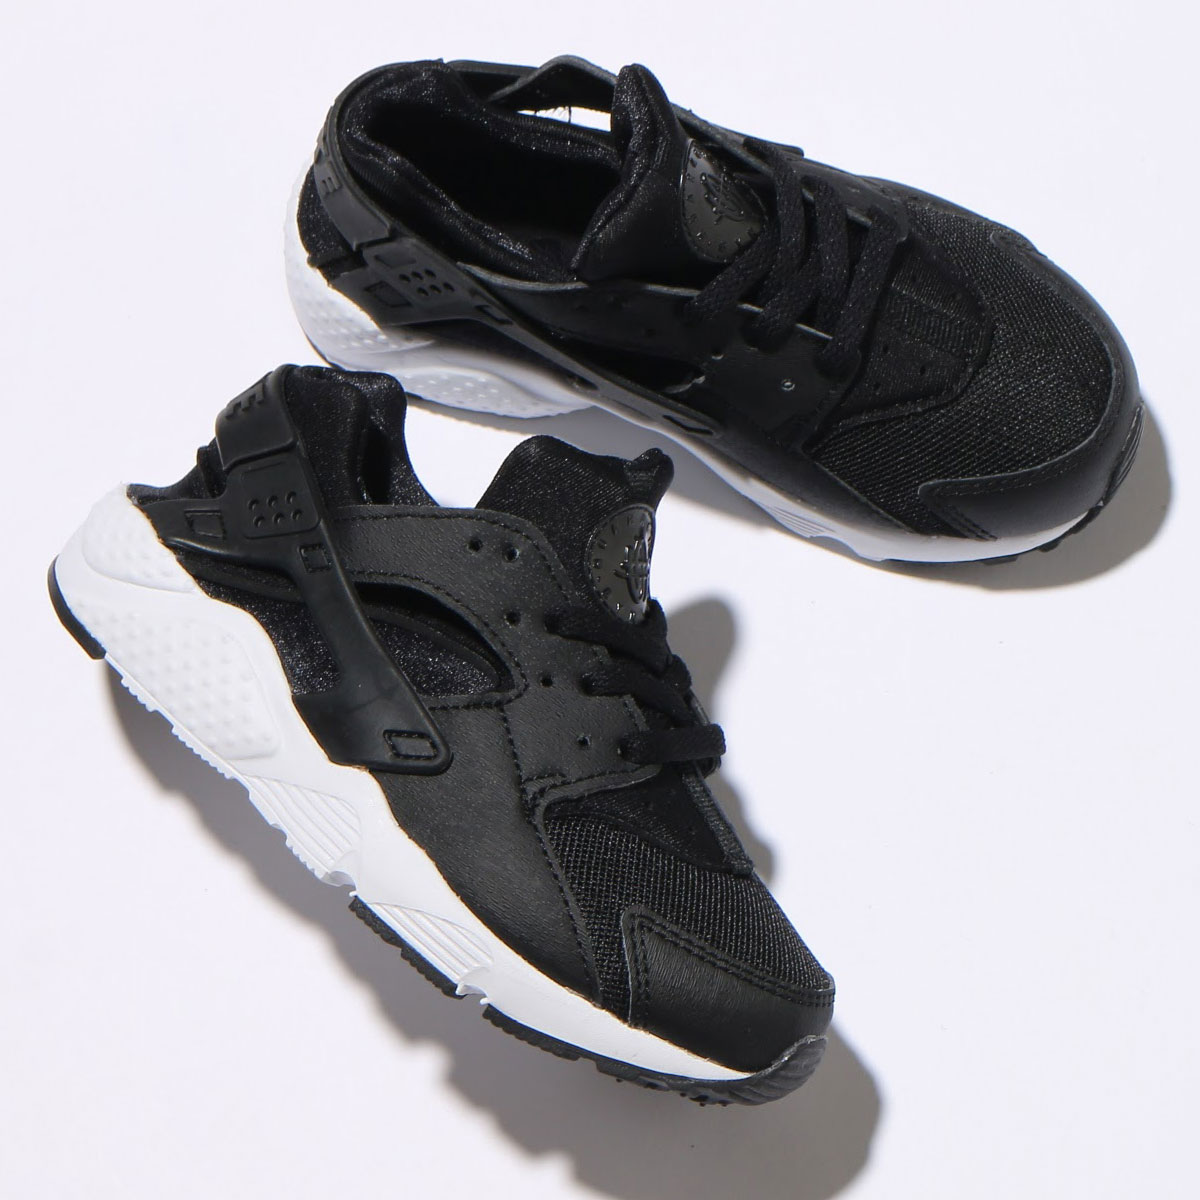 a5aae3f300 atmos-tokyo: NIKE HUARACHE RUN PS (Nike halti run PS) BLACK/WHITE ...